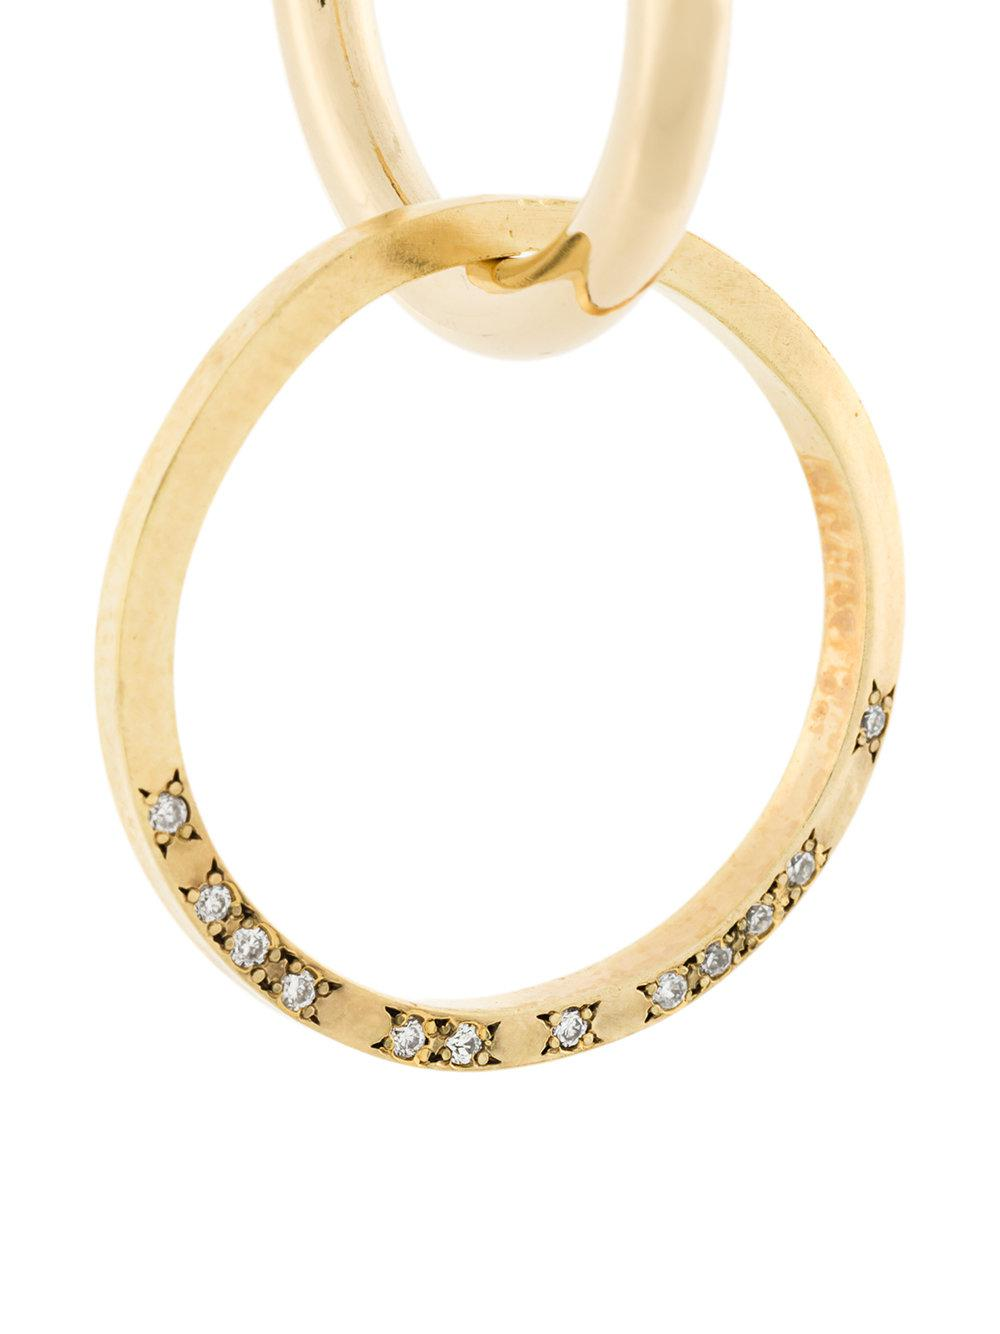 Lara Melchior 24kt gold embellished double hoop earring - Metallic 8p5tNF3gHD